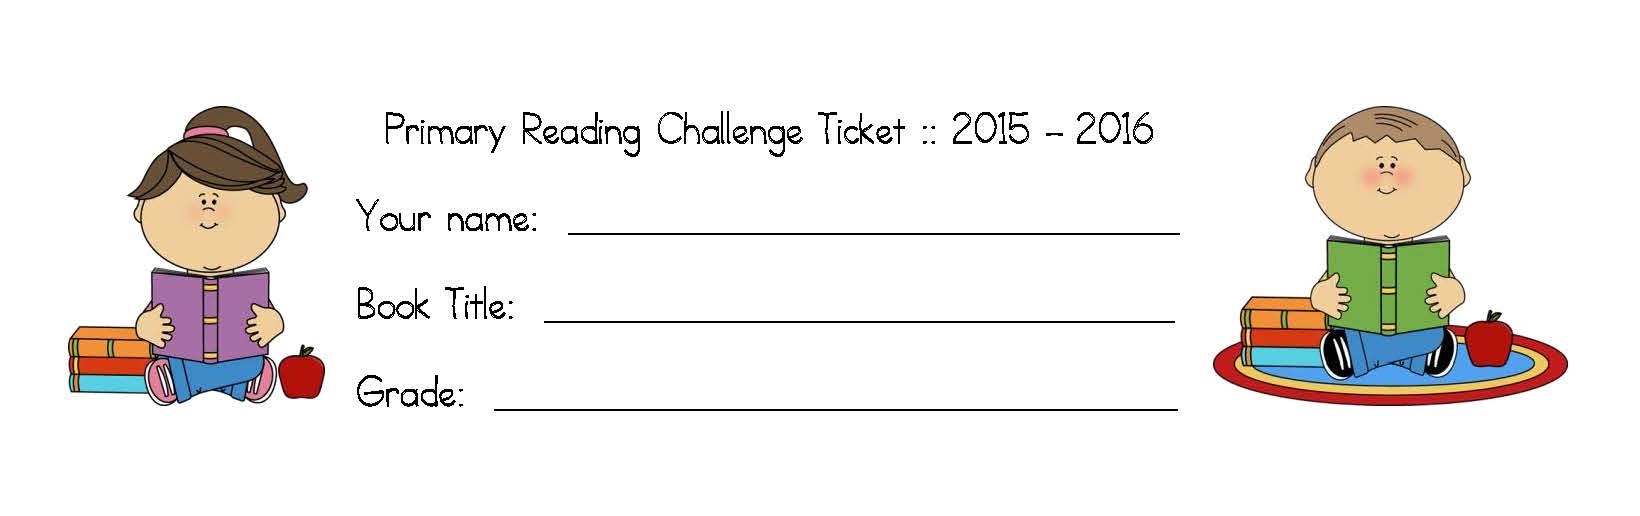 Primary Reading Challenge Tickets 2015-2016_Page_1 (2).jpg